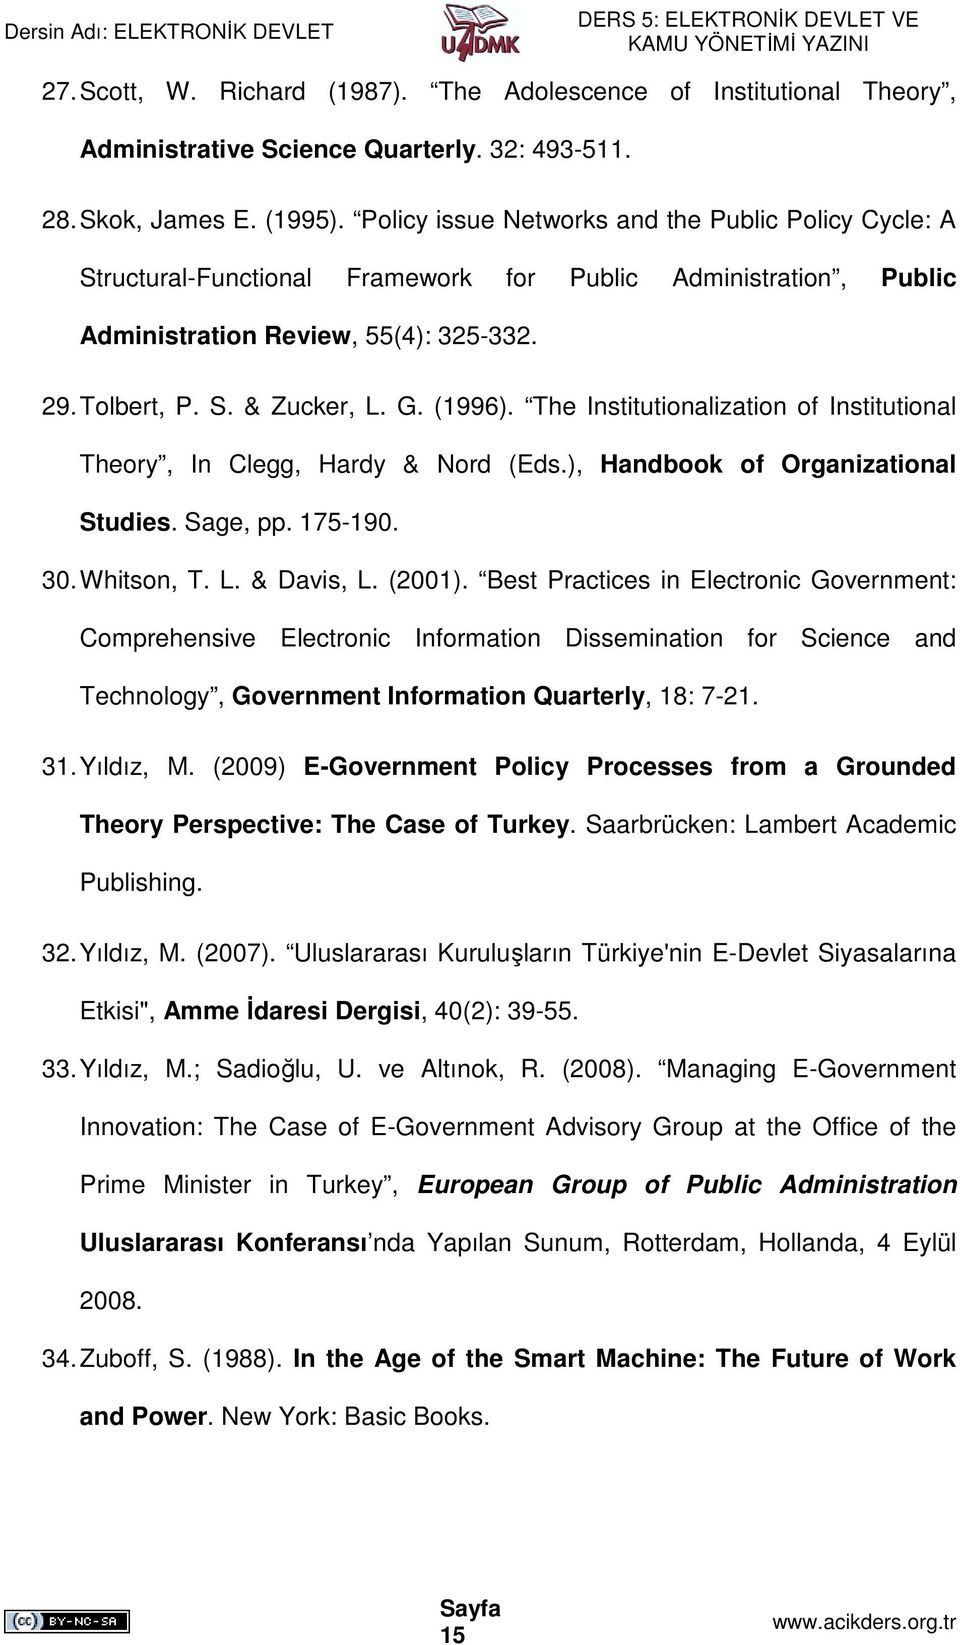 The Institutionalization of Institutional Theory, In Clegg, Hardy & Nord (Eds.), Handbook of Organizational Studies. Sage, pp. 175-190. 30. Whitson, T. L. & Davis, L. (2001).